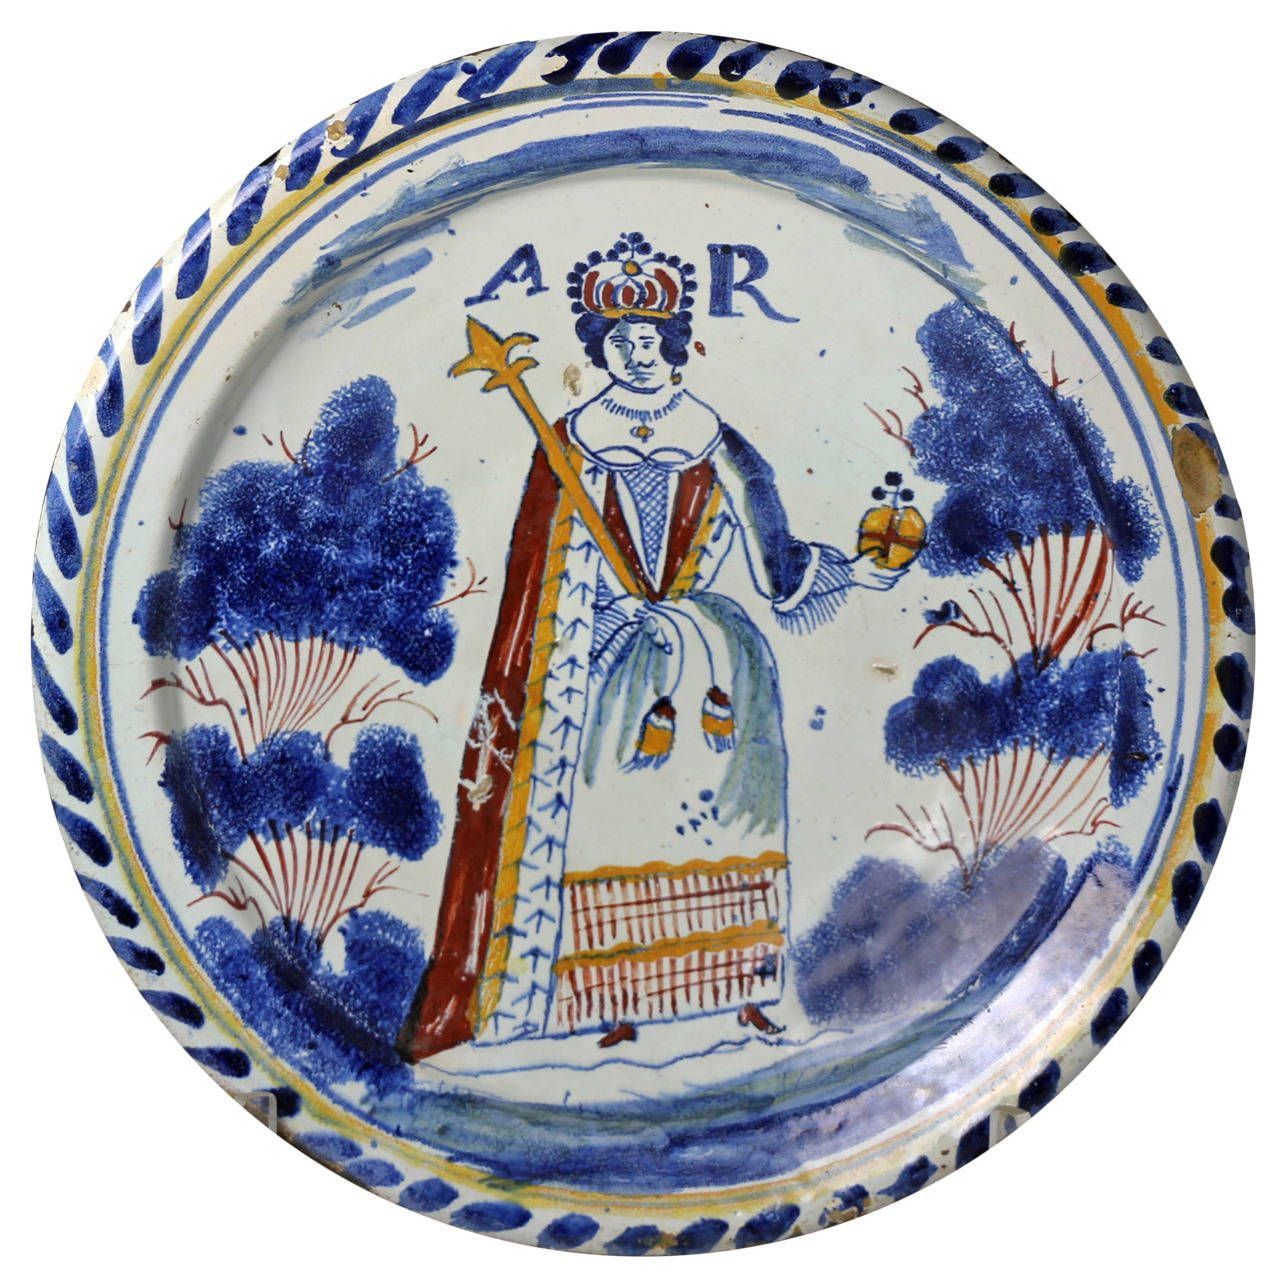 English Delftware Pottery Blue Dash Royalty Portrait Charger of Queen Anne, circa 1700